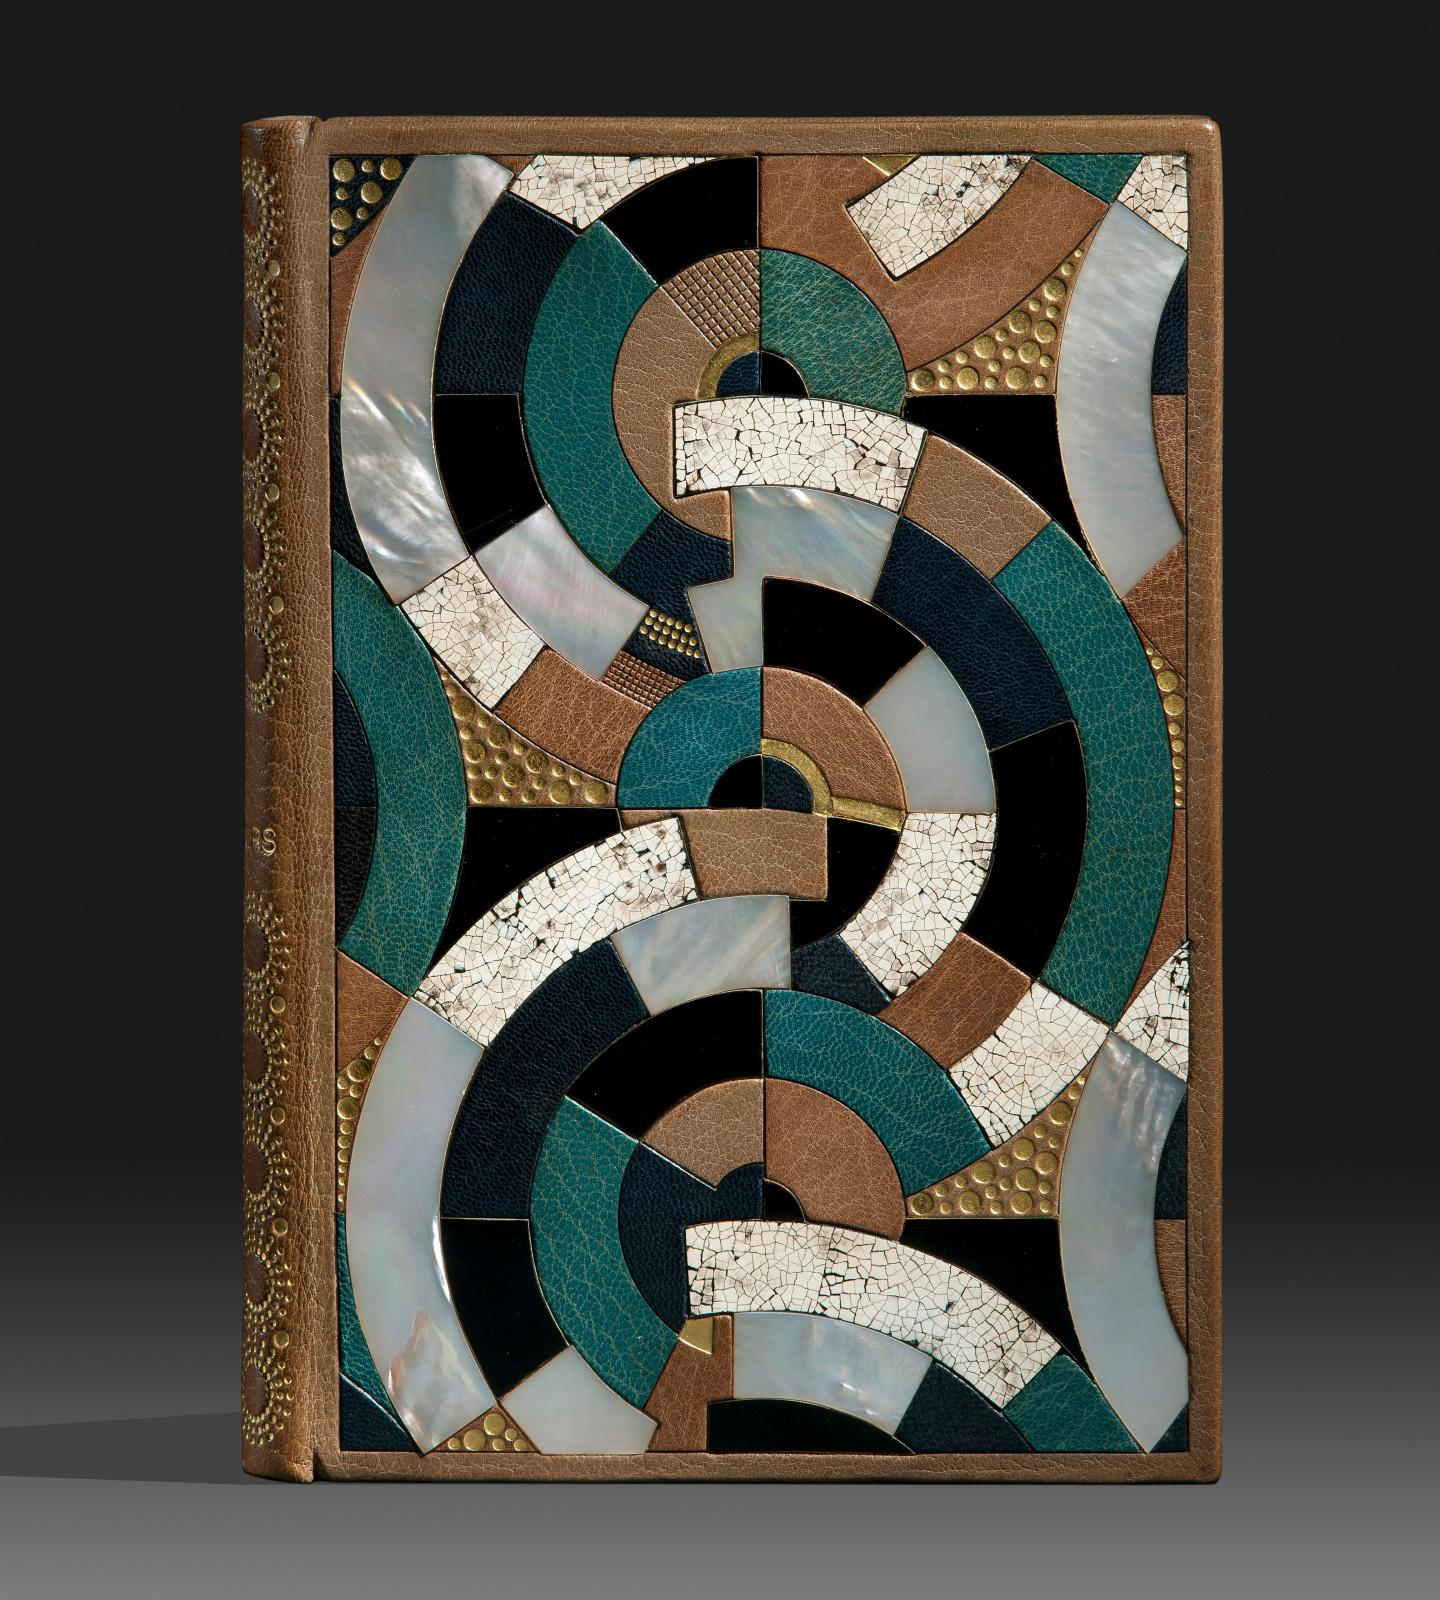 Binding for À rebours by Joris-Karl Huysmans. Covers embellished with a geometric composition in a mosaic of circle arc portions in morocc